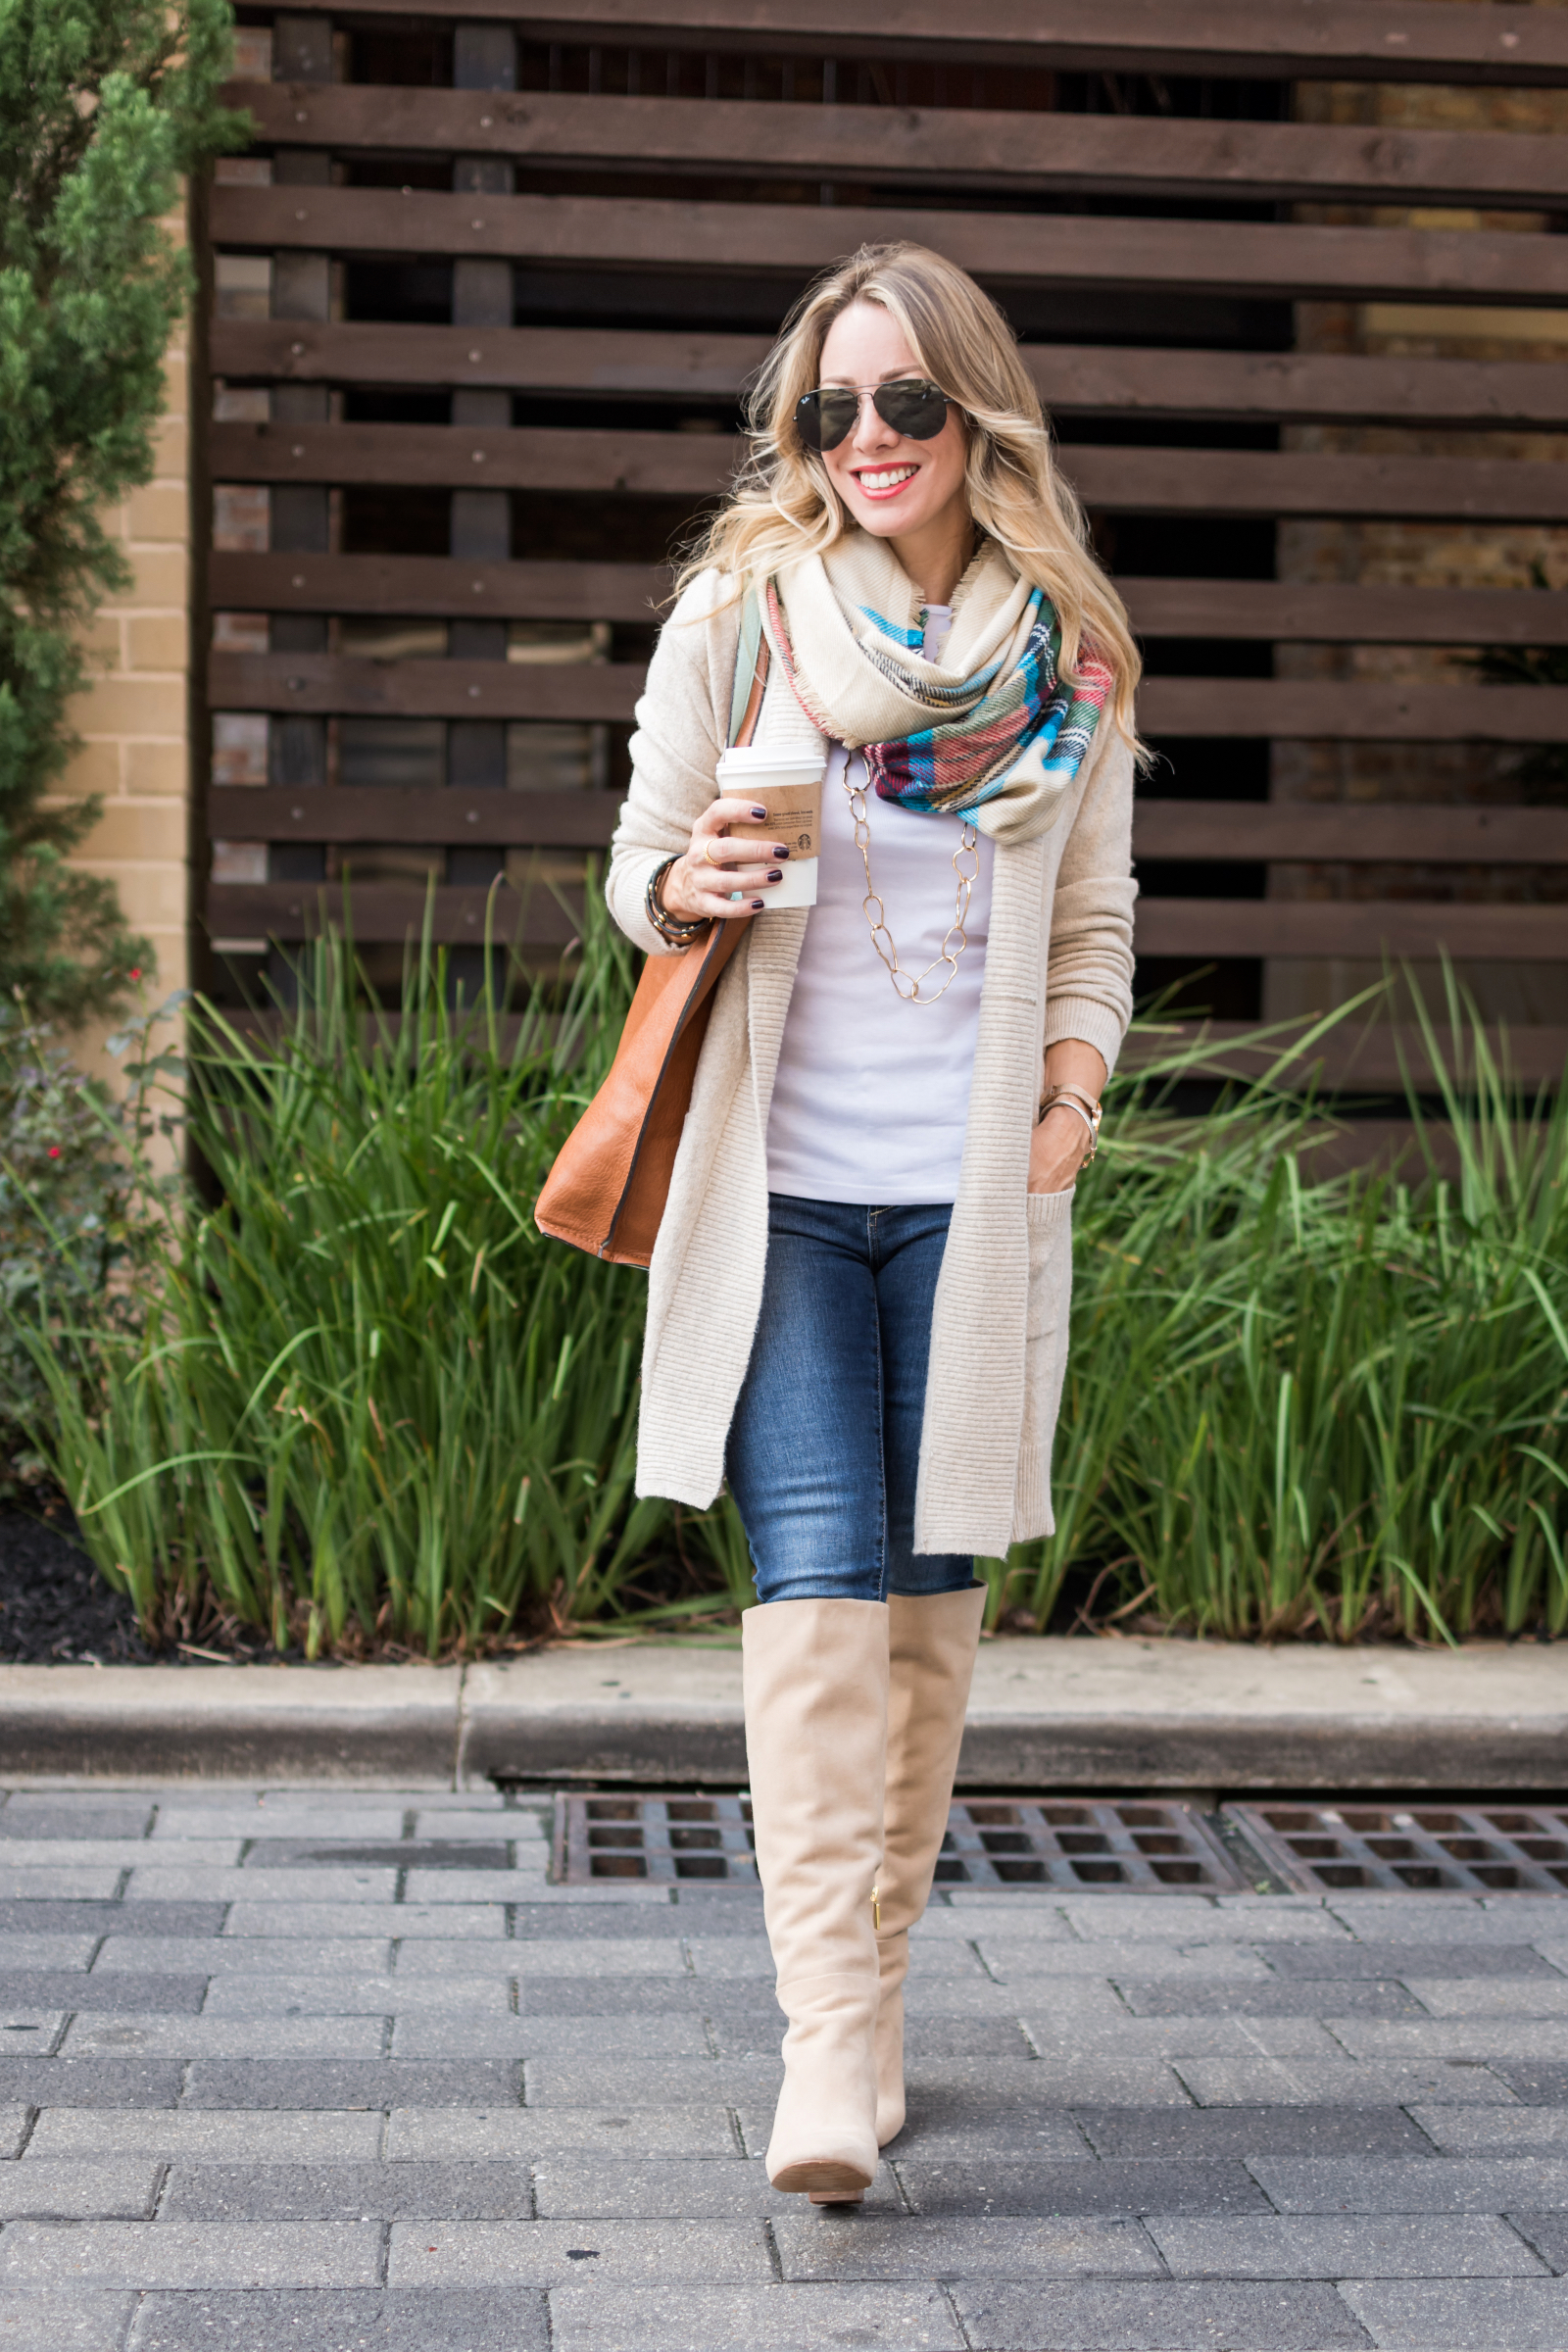 Fall fashion inspiration - knee high boots with jeans and ...